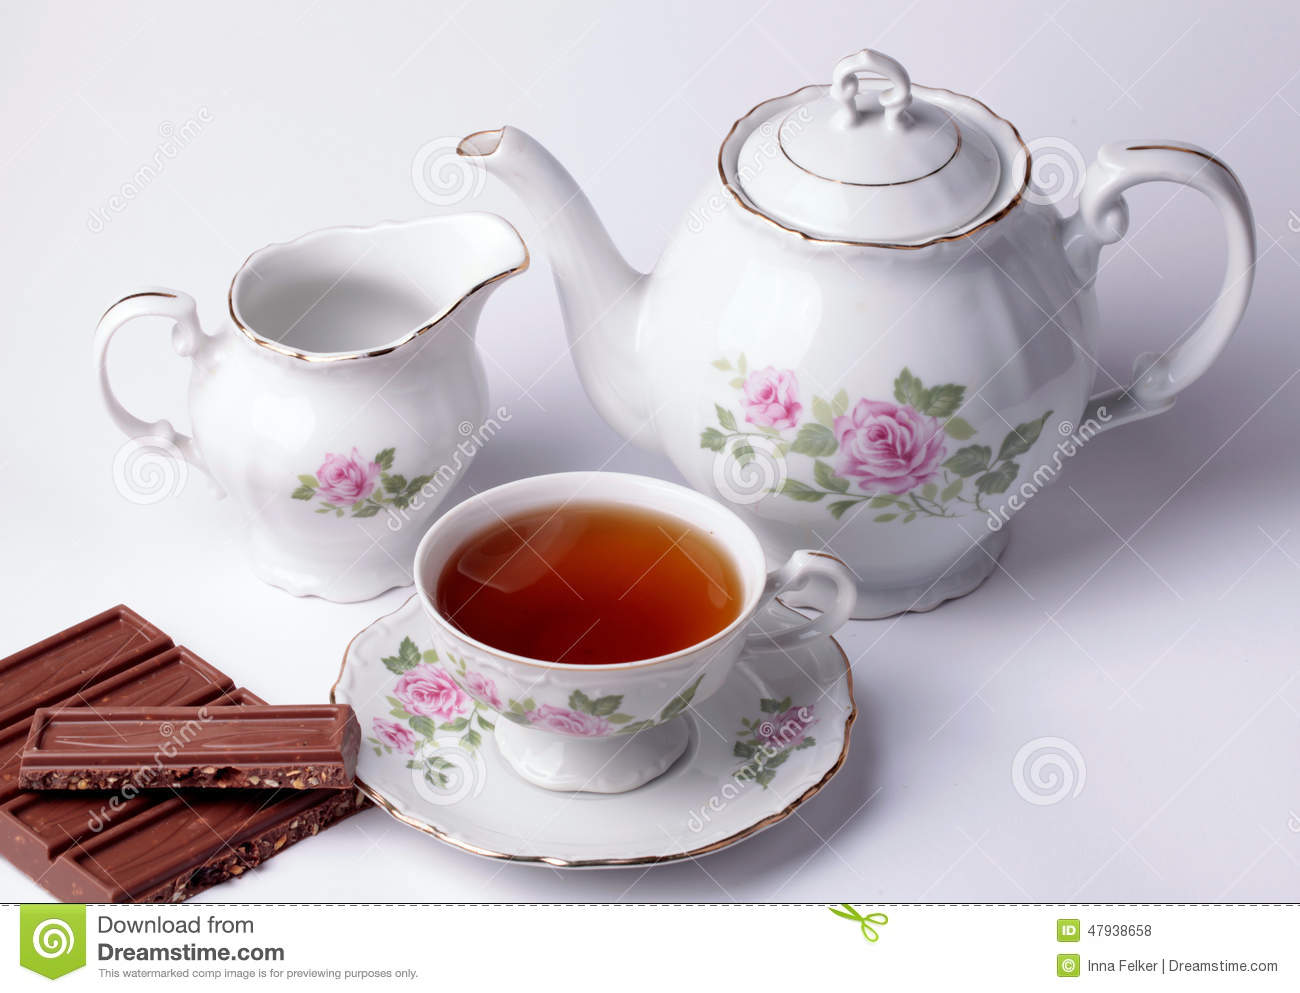 White Tea Set Floral Dishware With Chocolate Stock Photo